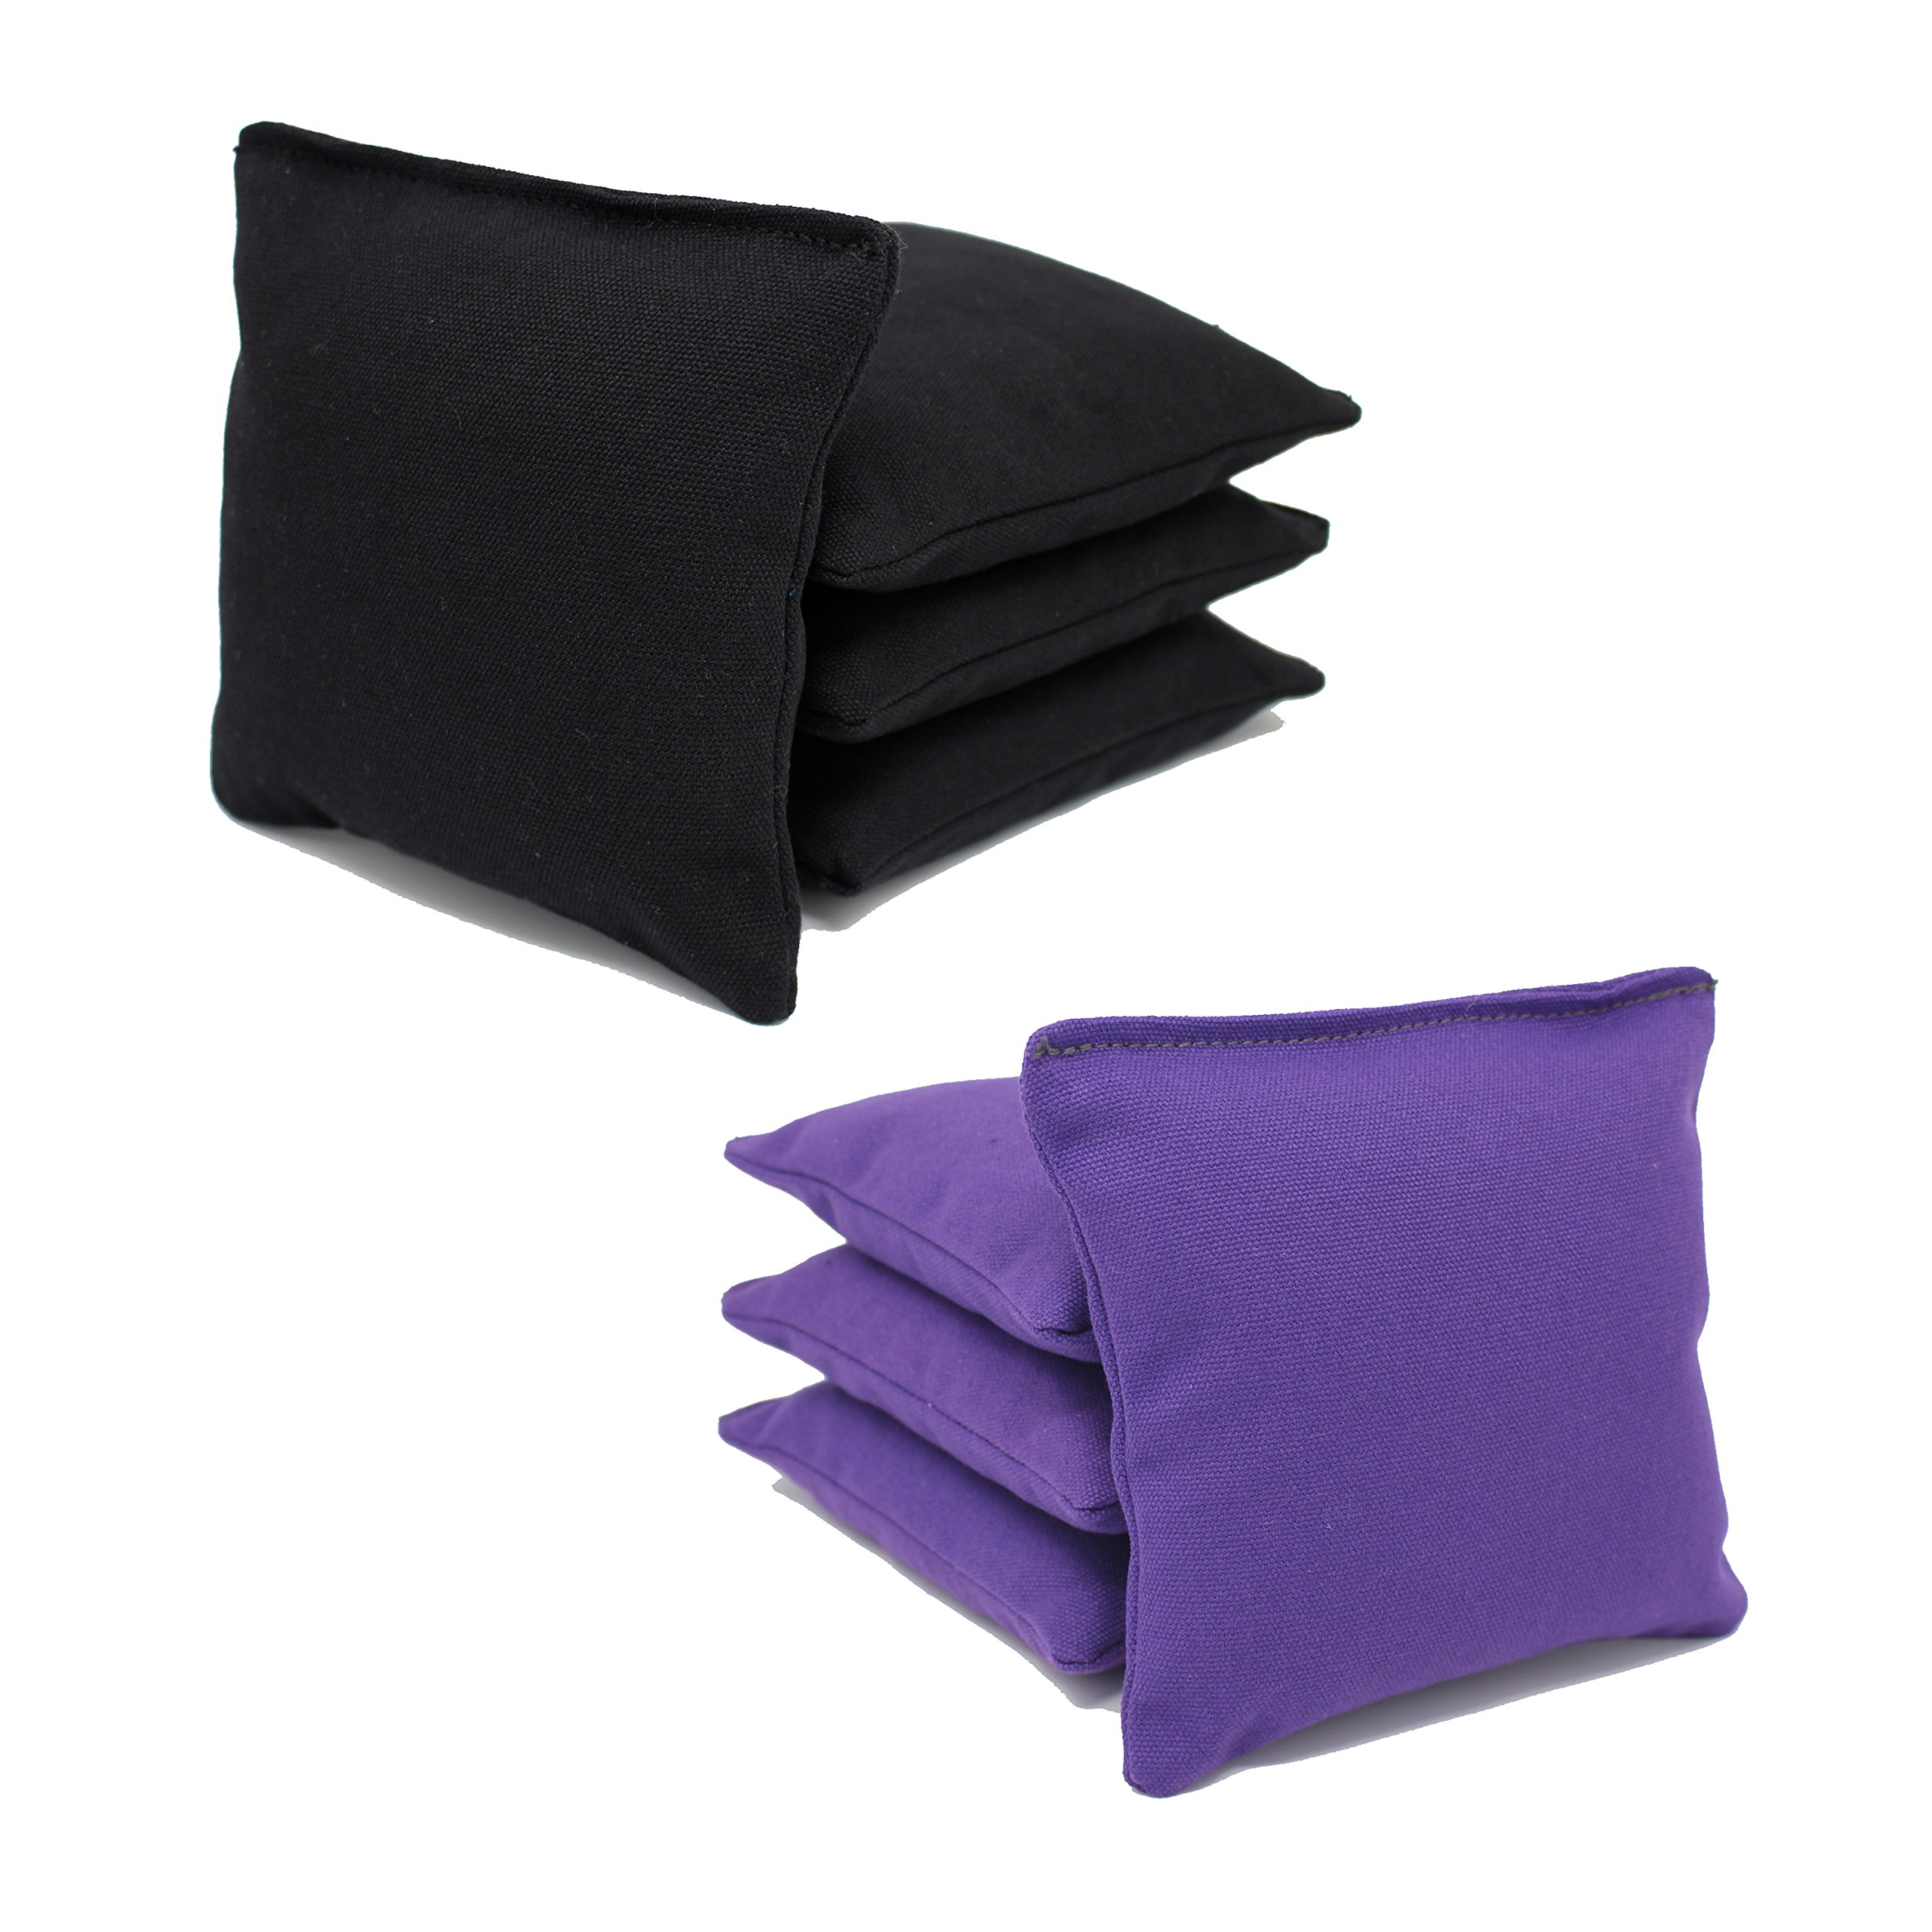 Free Donkey Sports ACA Regulation Cornhole Bags (Set of 8) (Black and Purple) 25+ Colors to Choose from.